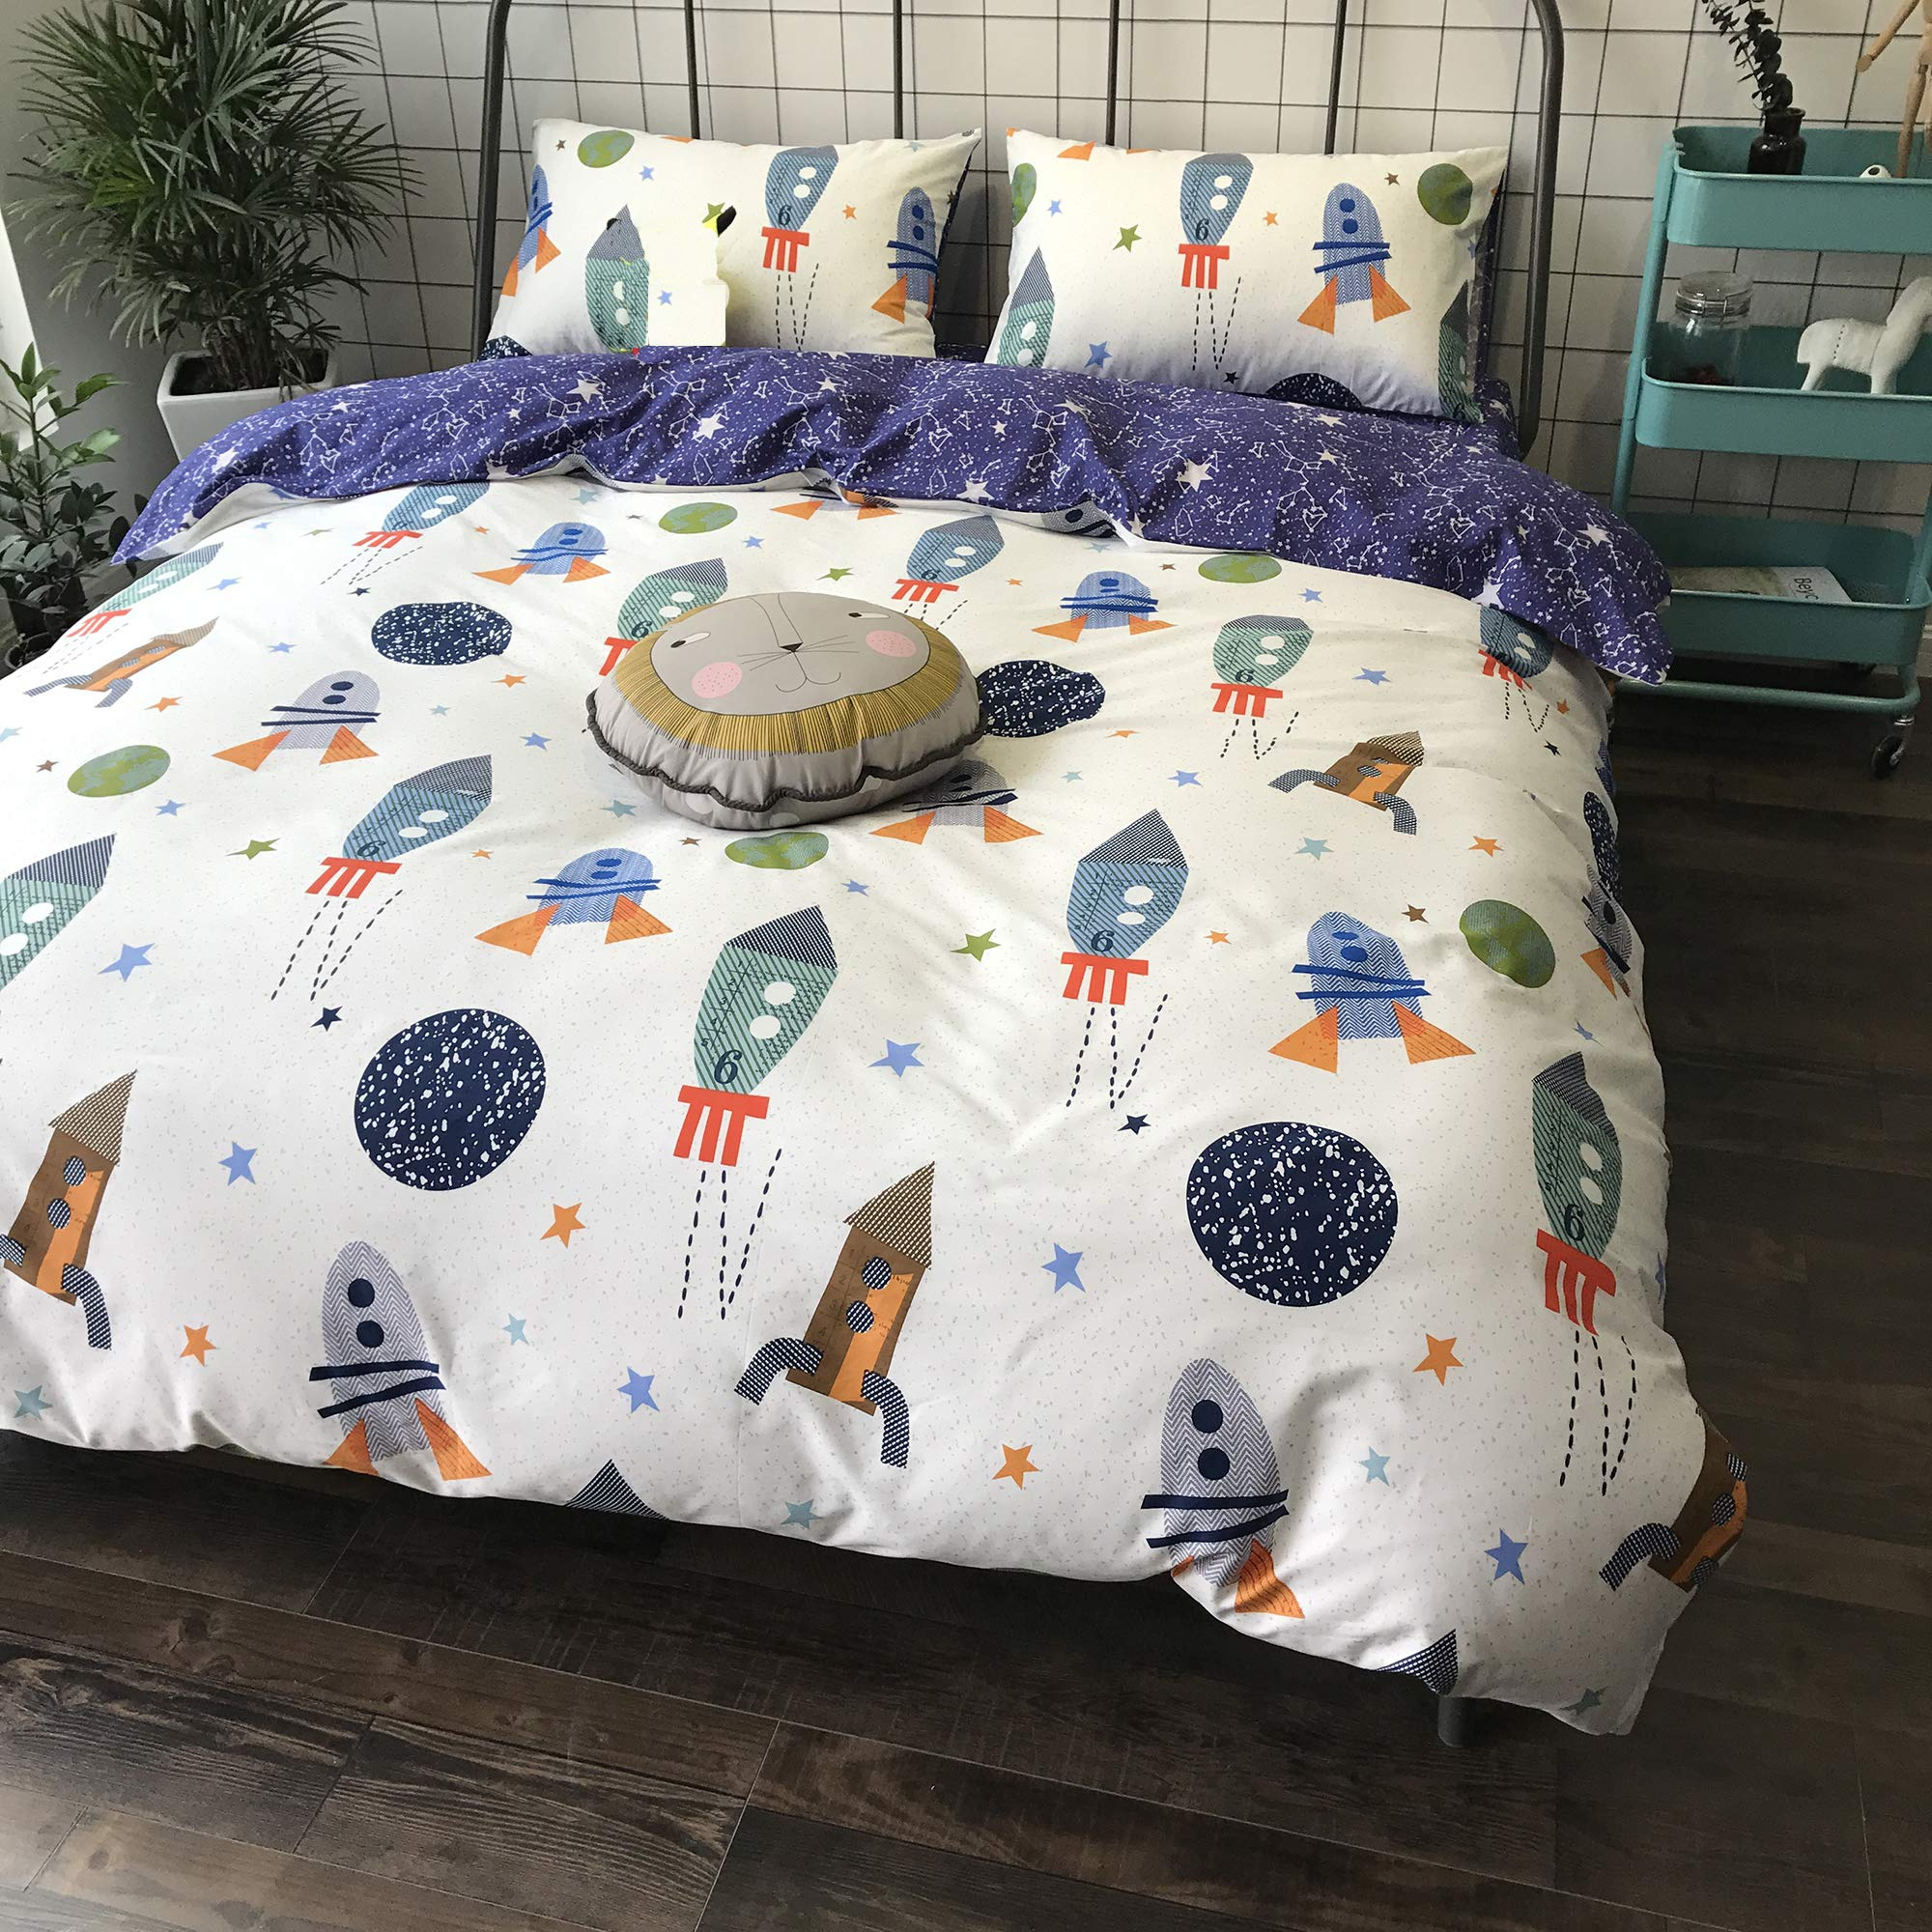 karever Space Rocket Print Cotton Boys Duvet Cover Sets Twin White Blue Universe Adventure Theme Star Kids Girls Bedding Sets with 2 Pillowcases Zipper Gifts